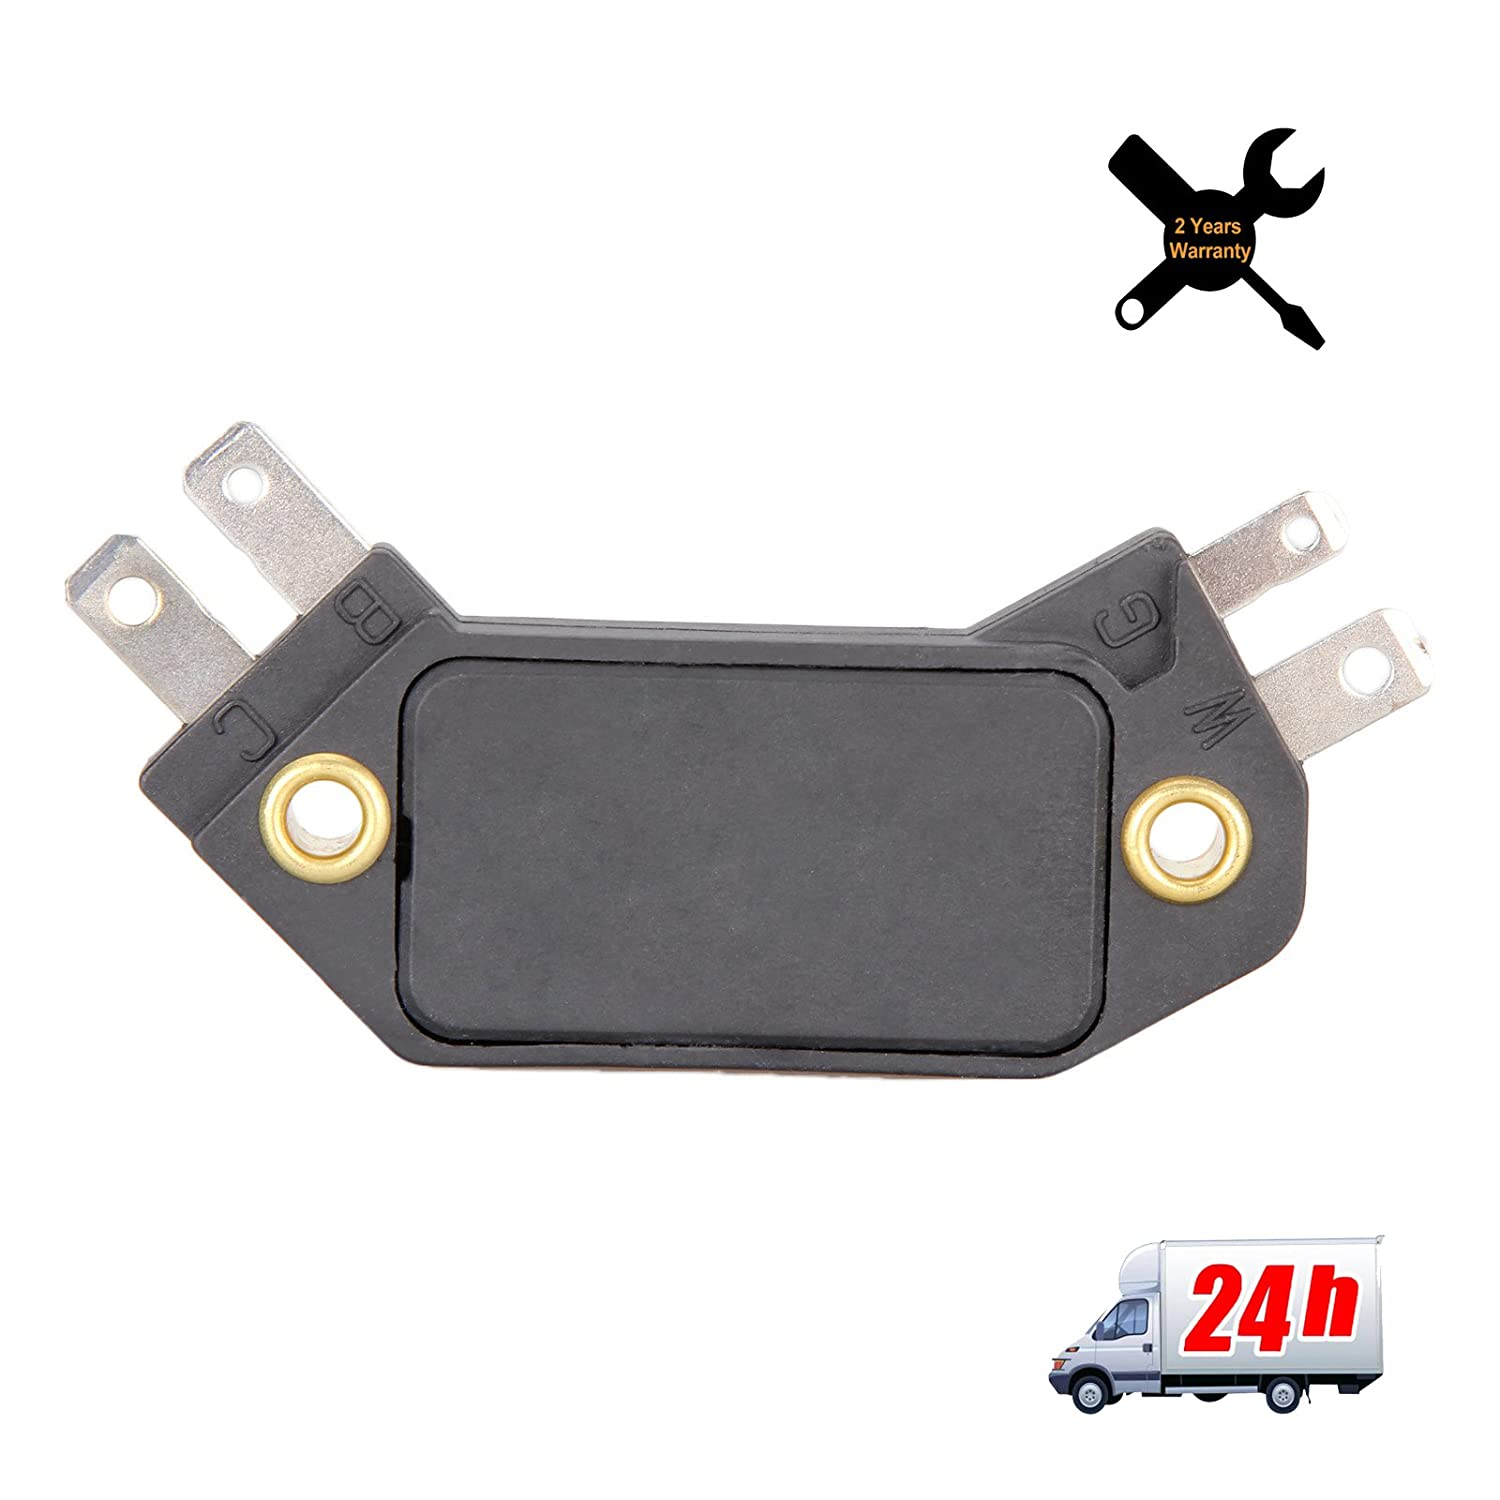 4 Pin Ignition Control Module LX301 For GMC Chevrolet Oldsmobile Pontiac Jeep From Madlife Garage